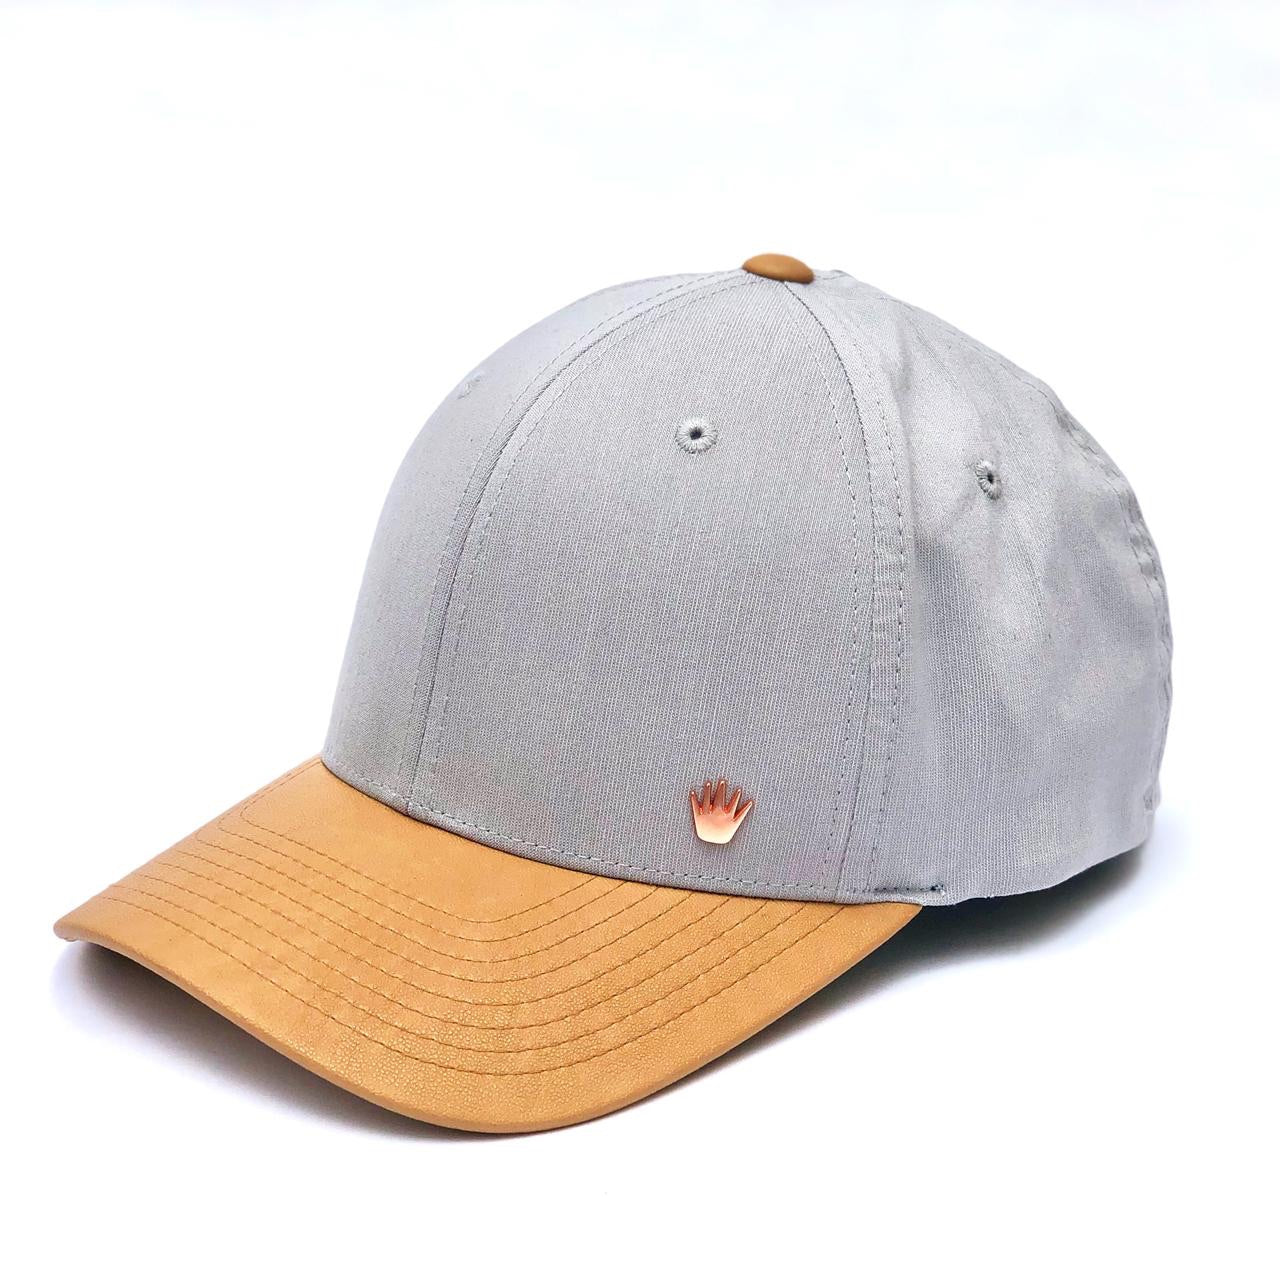 check out 57c71 8a261 No bad ideas - JUSTISE FLEXFIT CAP – High Life